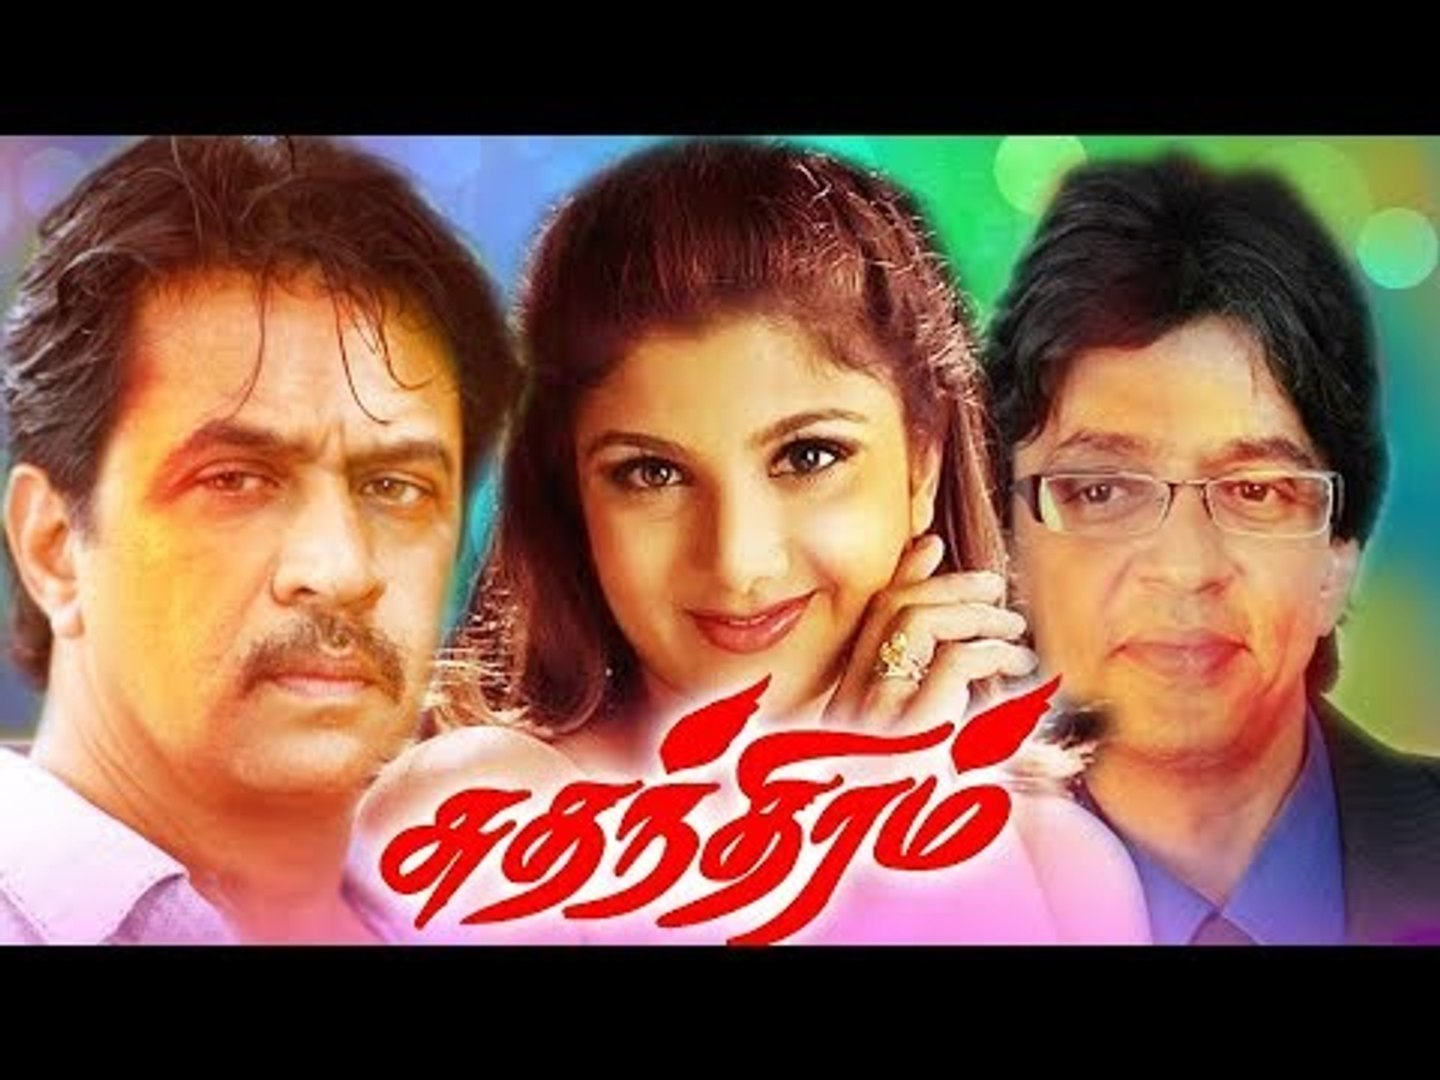 Tamil New Action Full Movies # Sudhandhiram # Latest Tamil Movies # Latest Upload New Releases